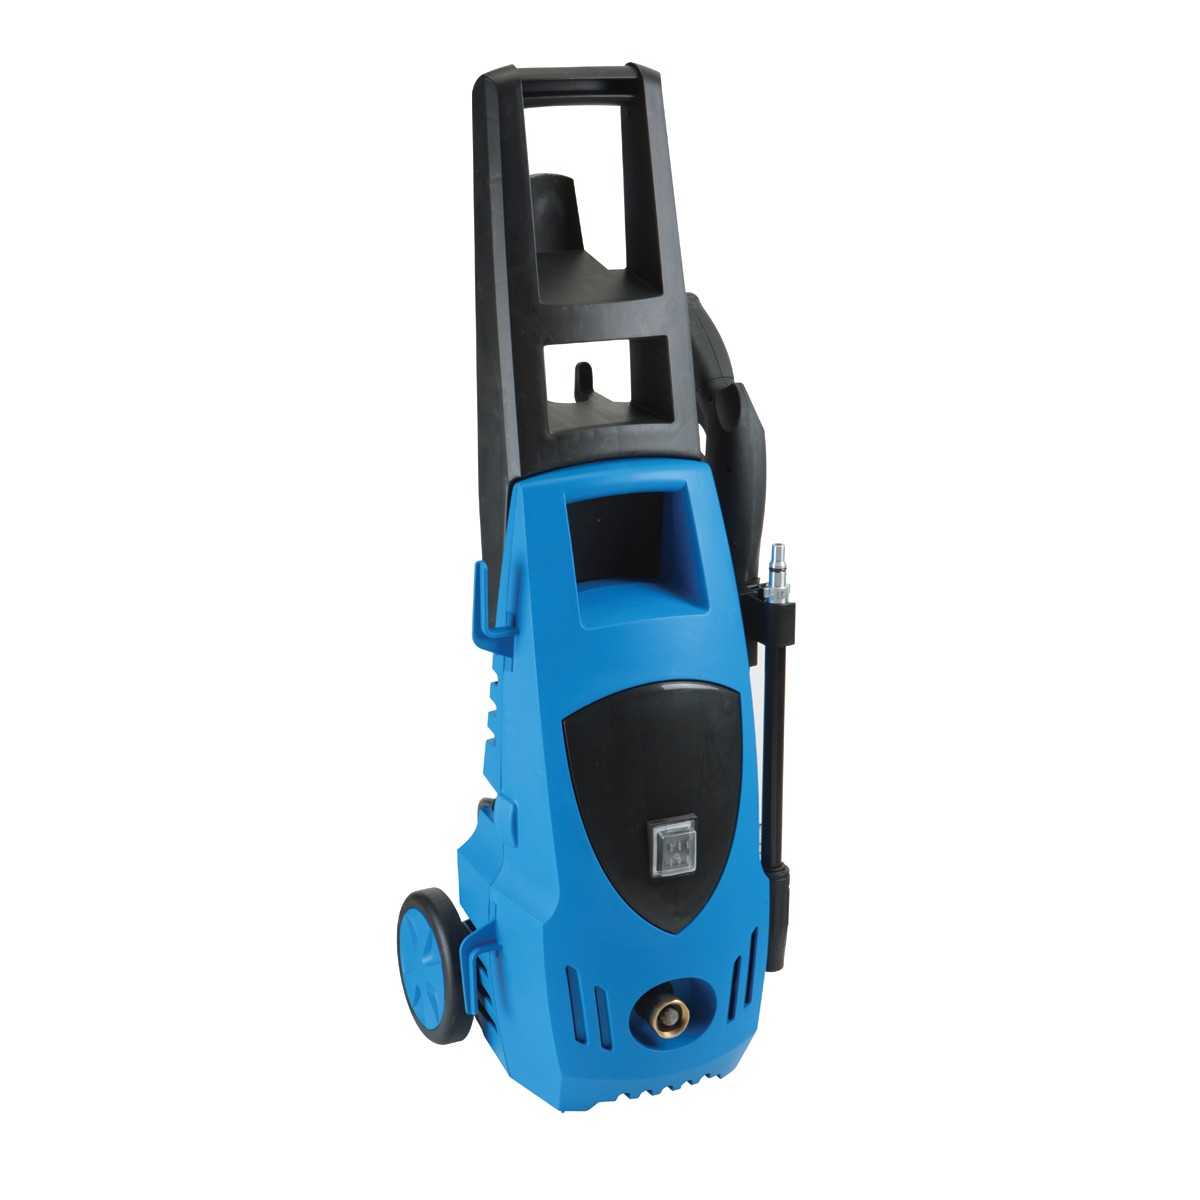 pacific hydrostar pressure washer parts, owner's manuals and Pressure Washer Plumbing Diagram  Pressure Washer Service Chore Master Pressure Washer 3500 Hydro Tek Pressure Washer Manual